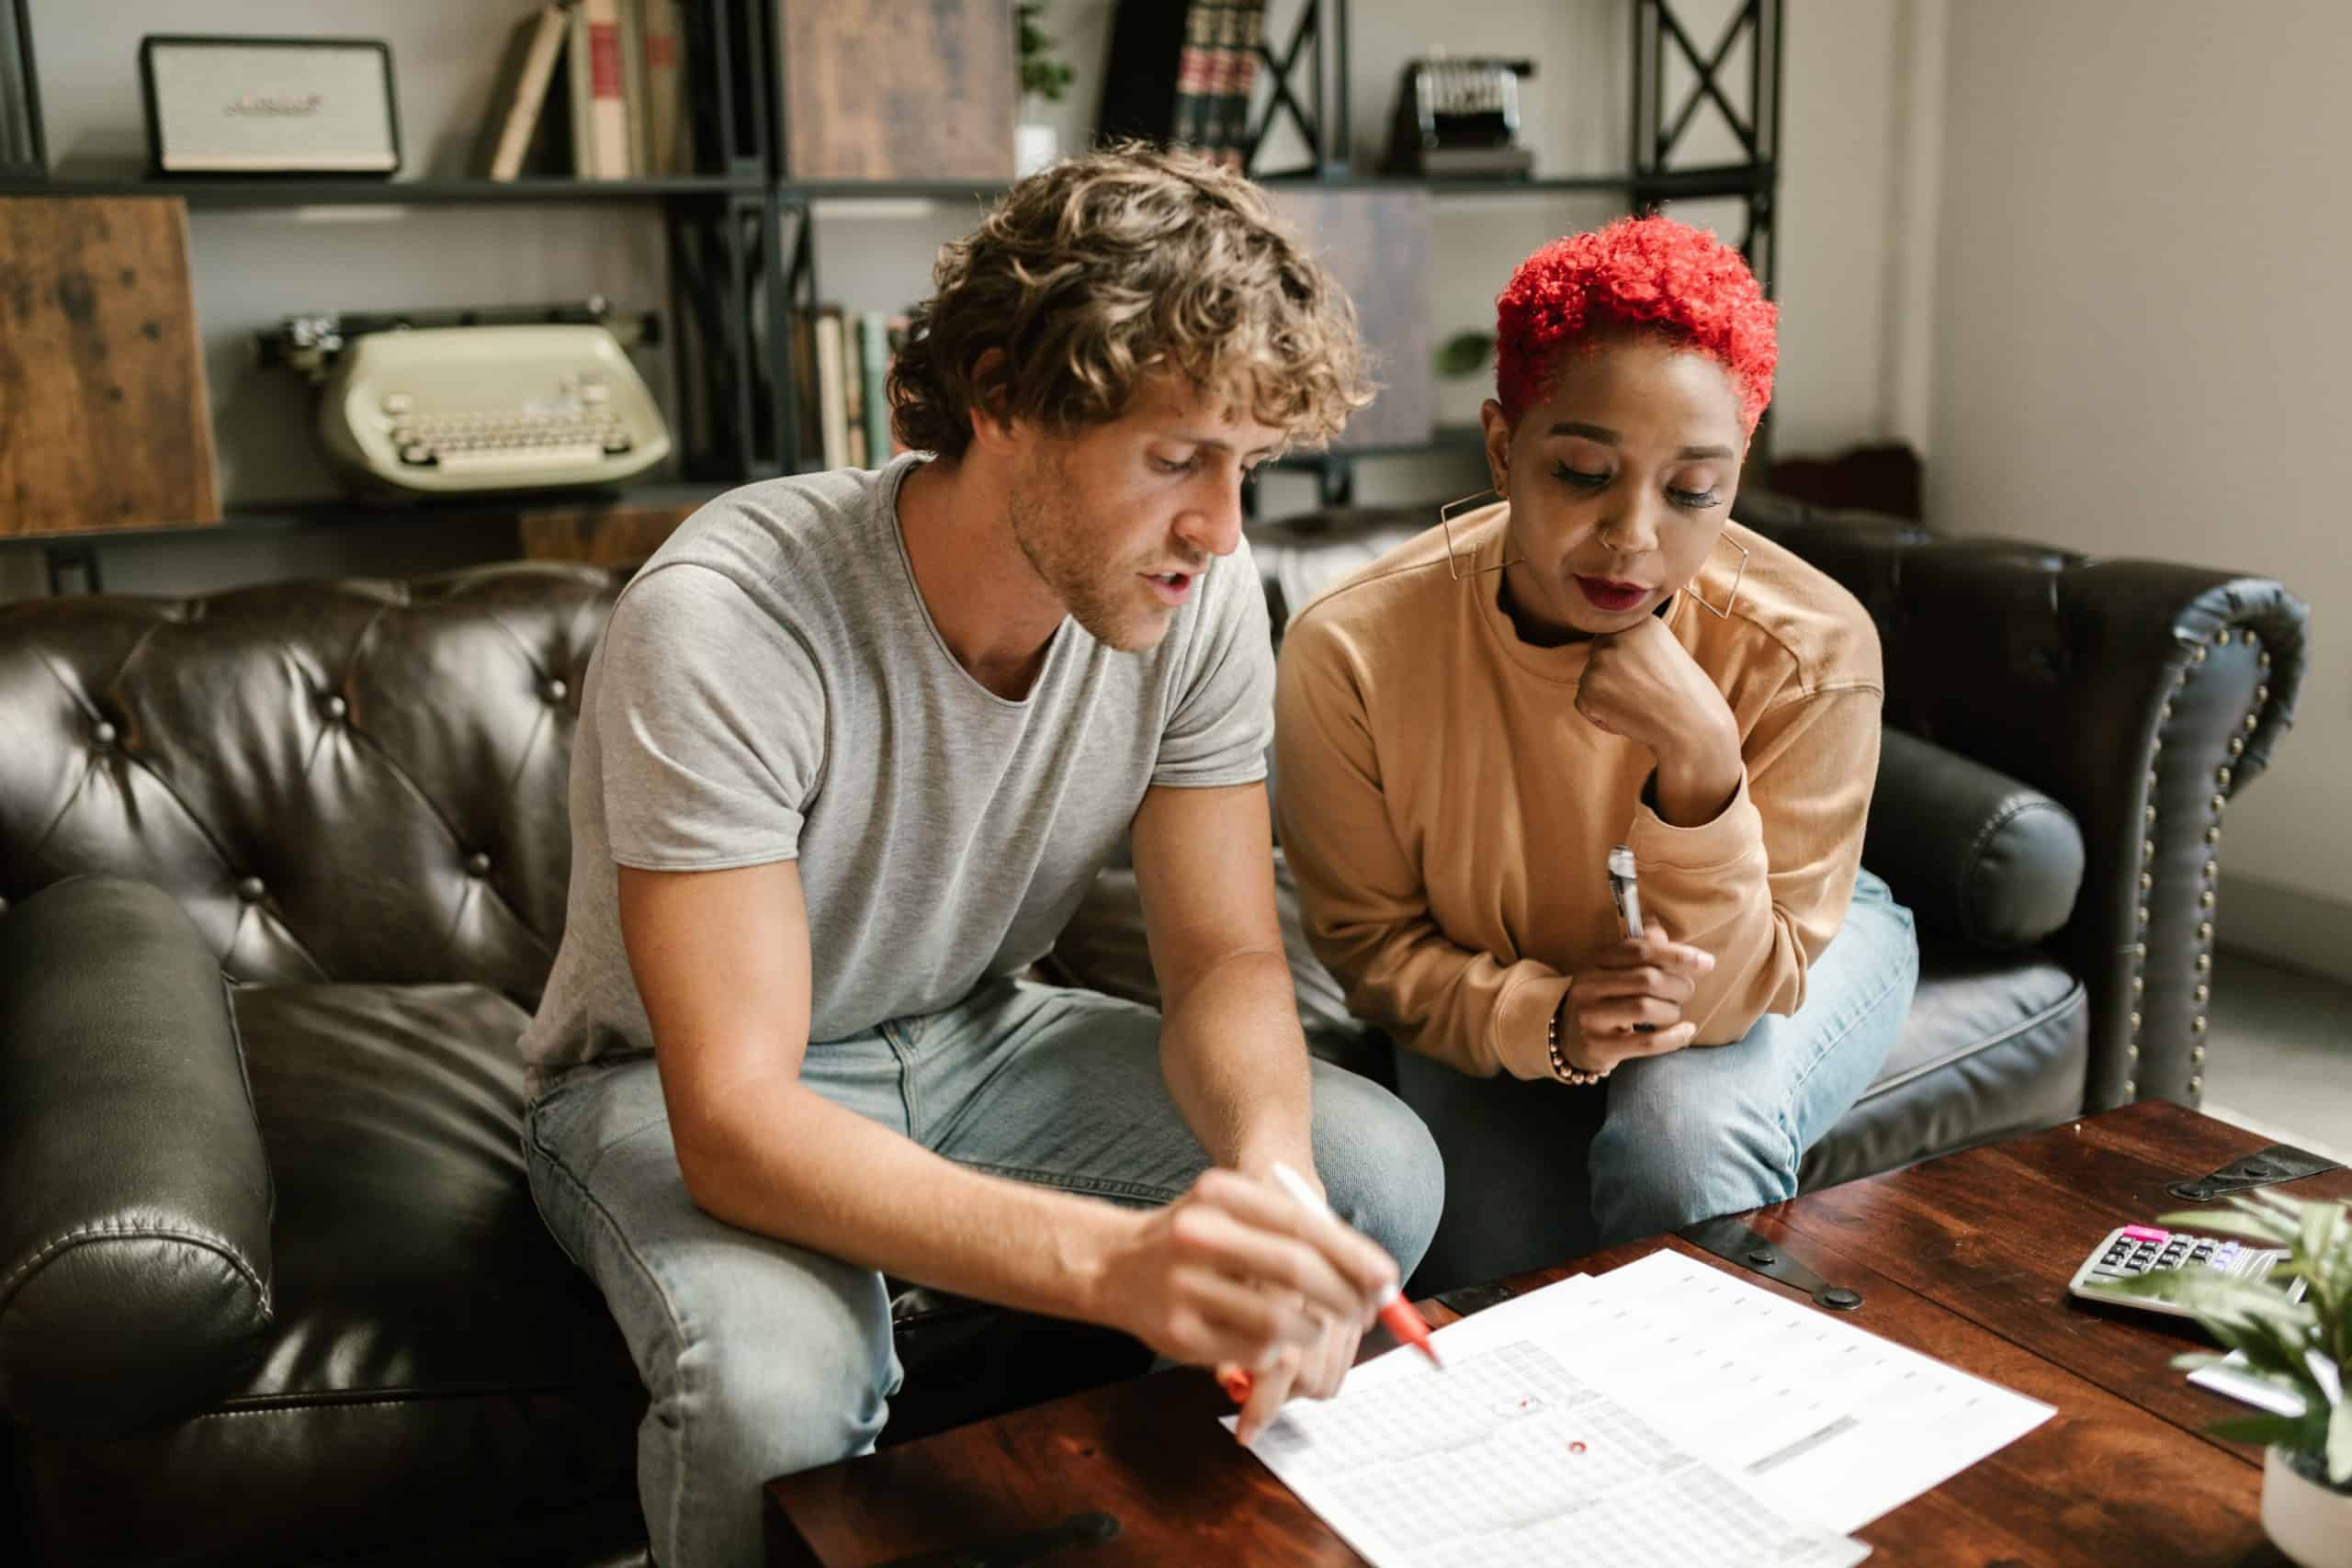 White man and black woman look closely at financial documents